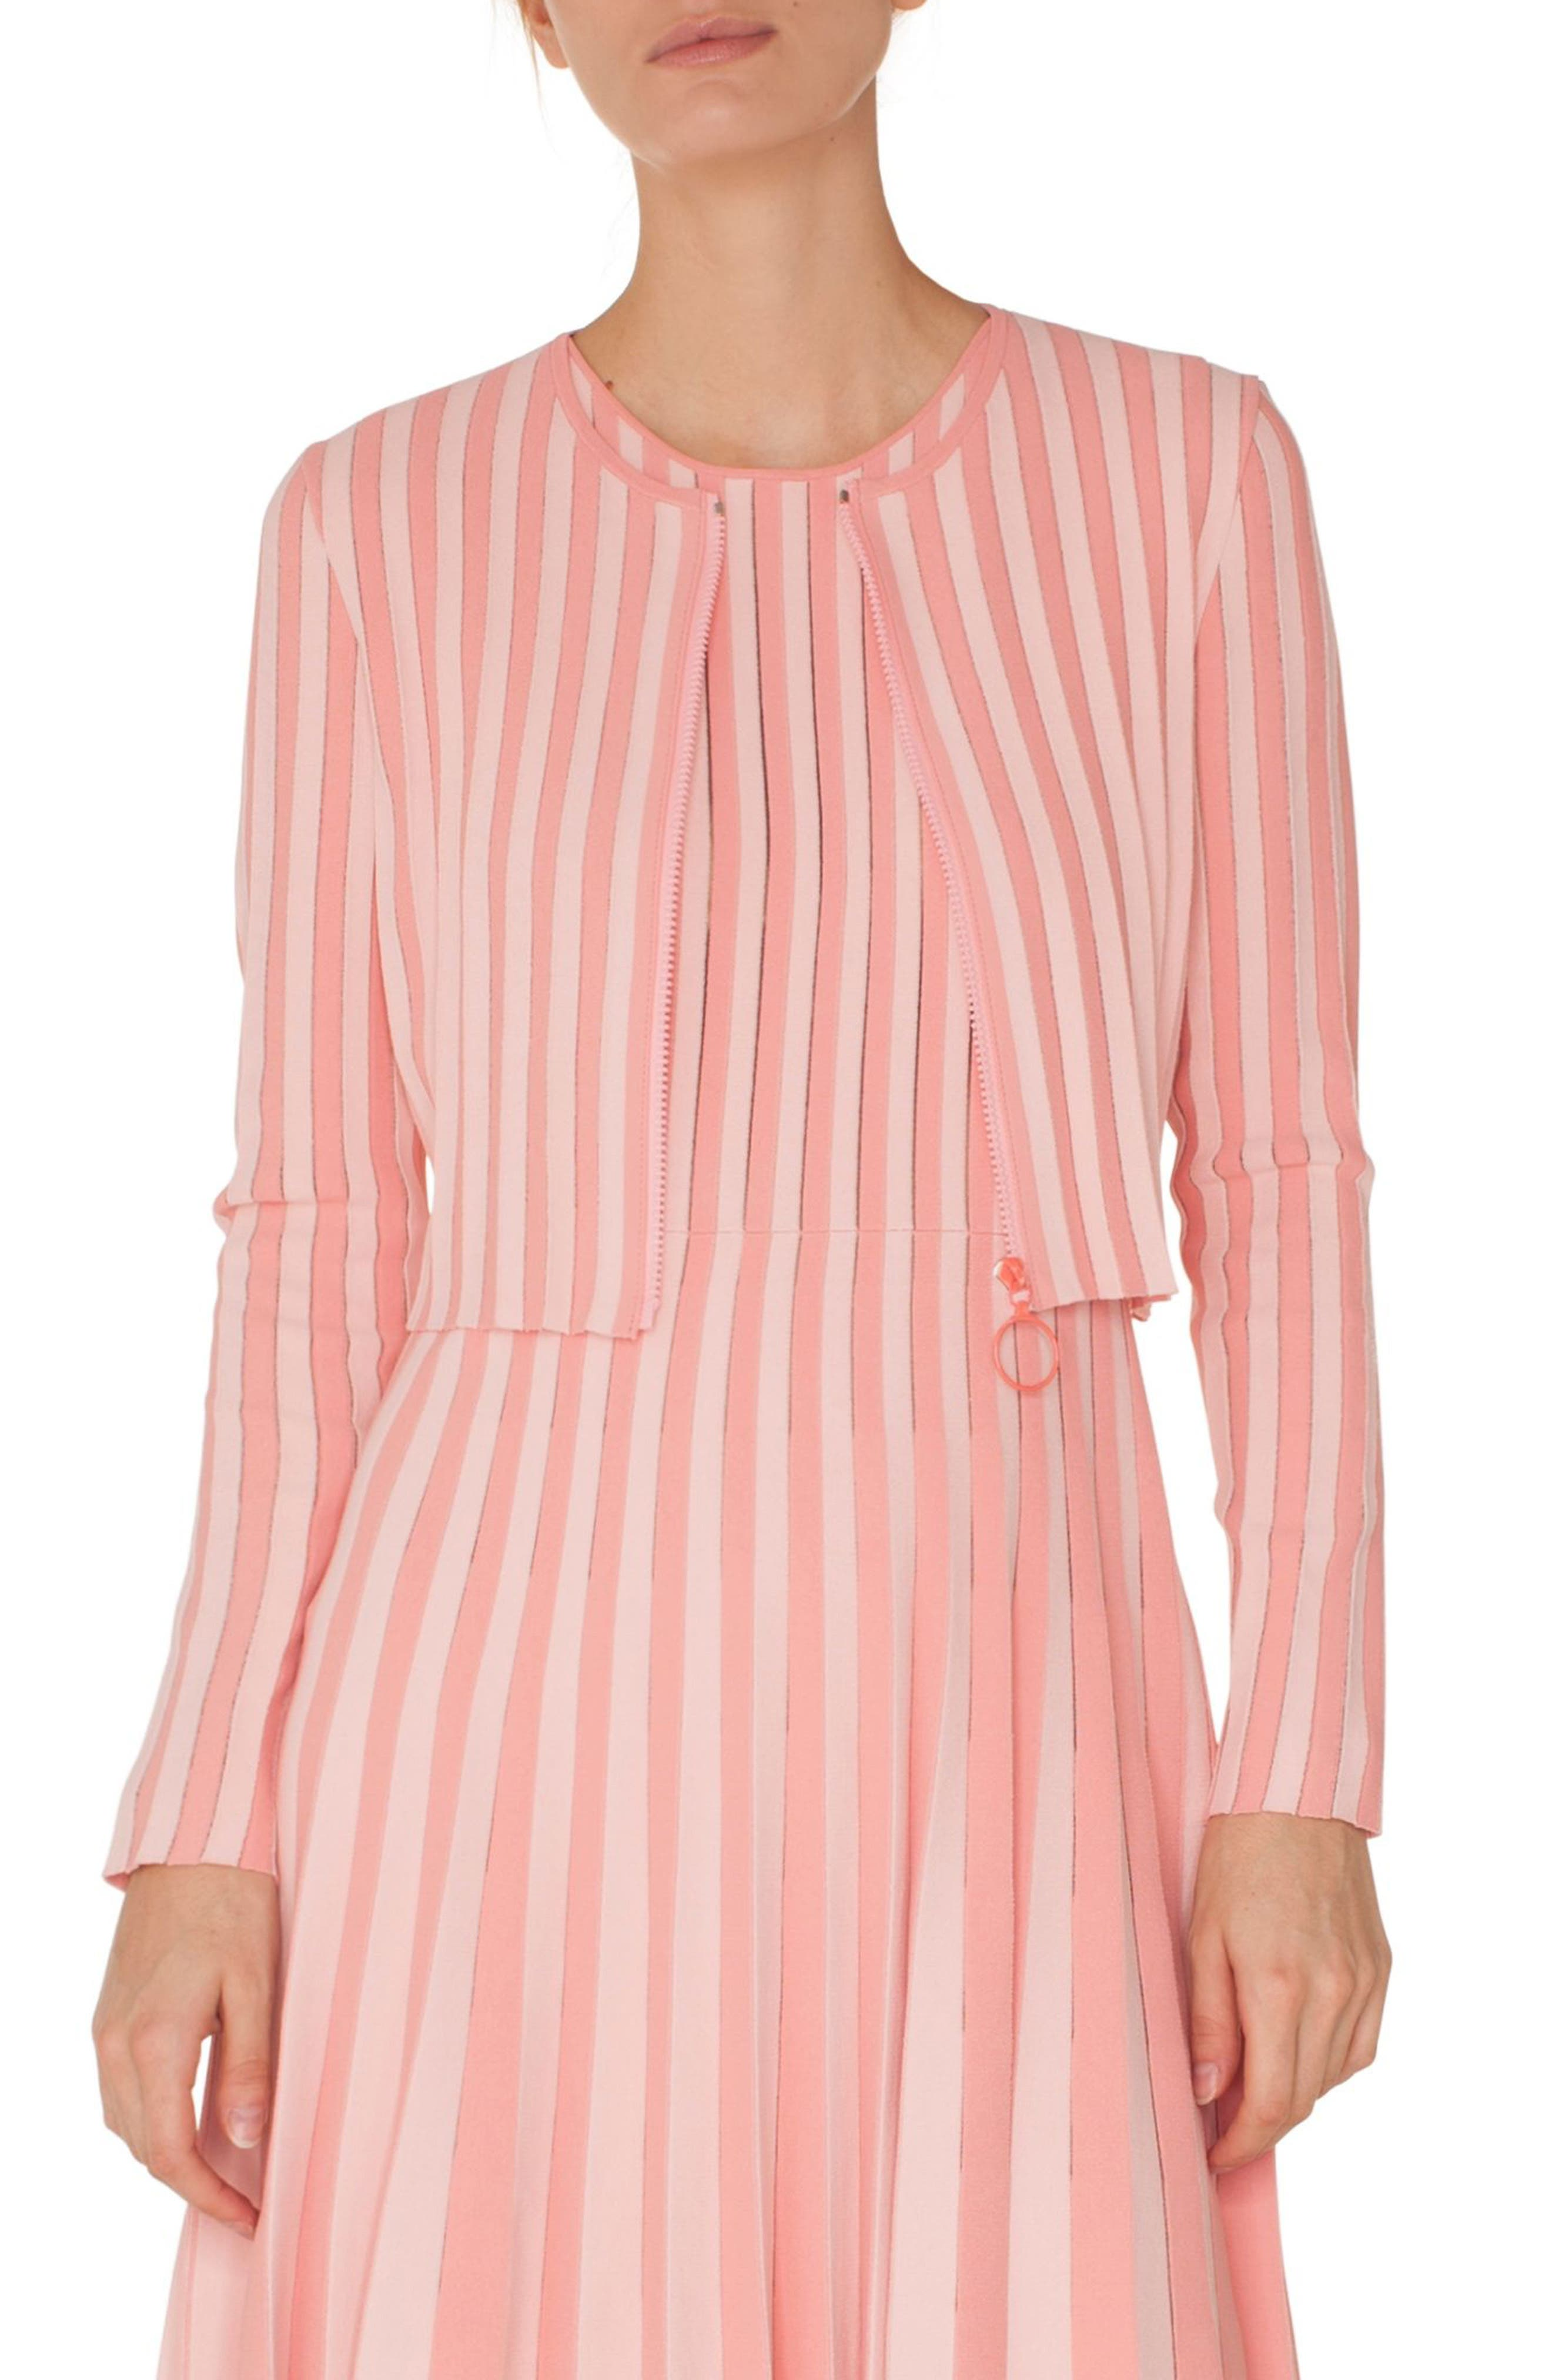 AKRIS PUNTO Zip-Front Long-Sleeve Striped Knit Cropped Bolero in Rose - Peony